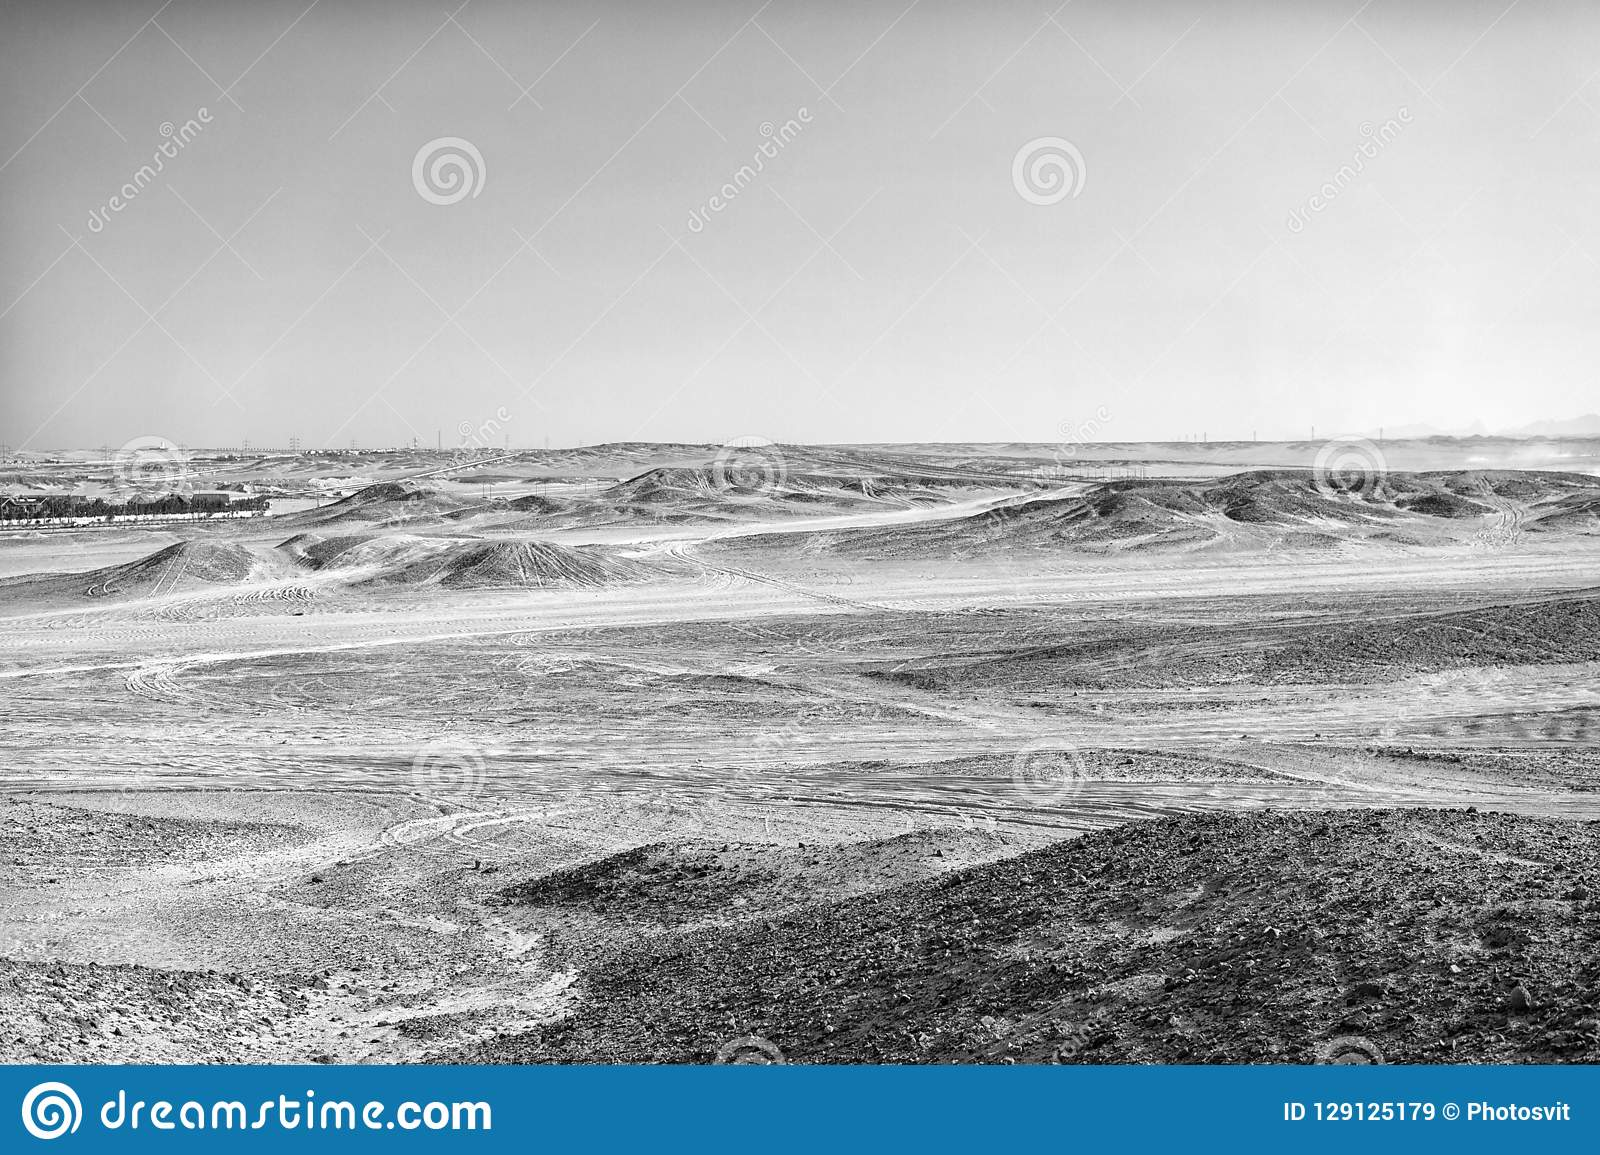 Desert landscape on clear blue sky background. Dune land with dry terrain surface. Ecology and global warming effect